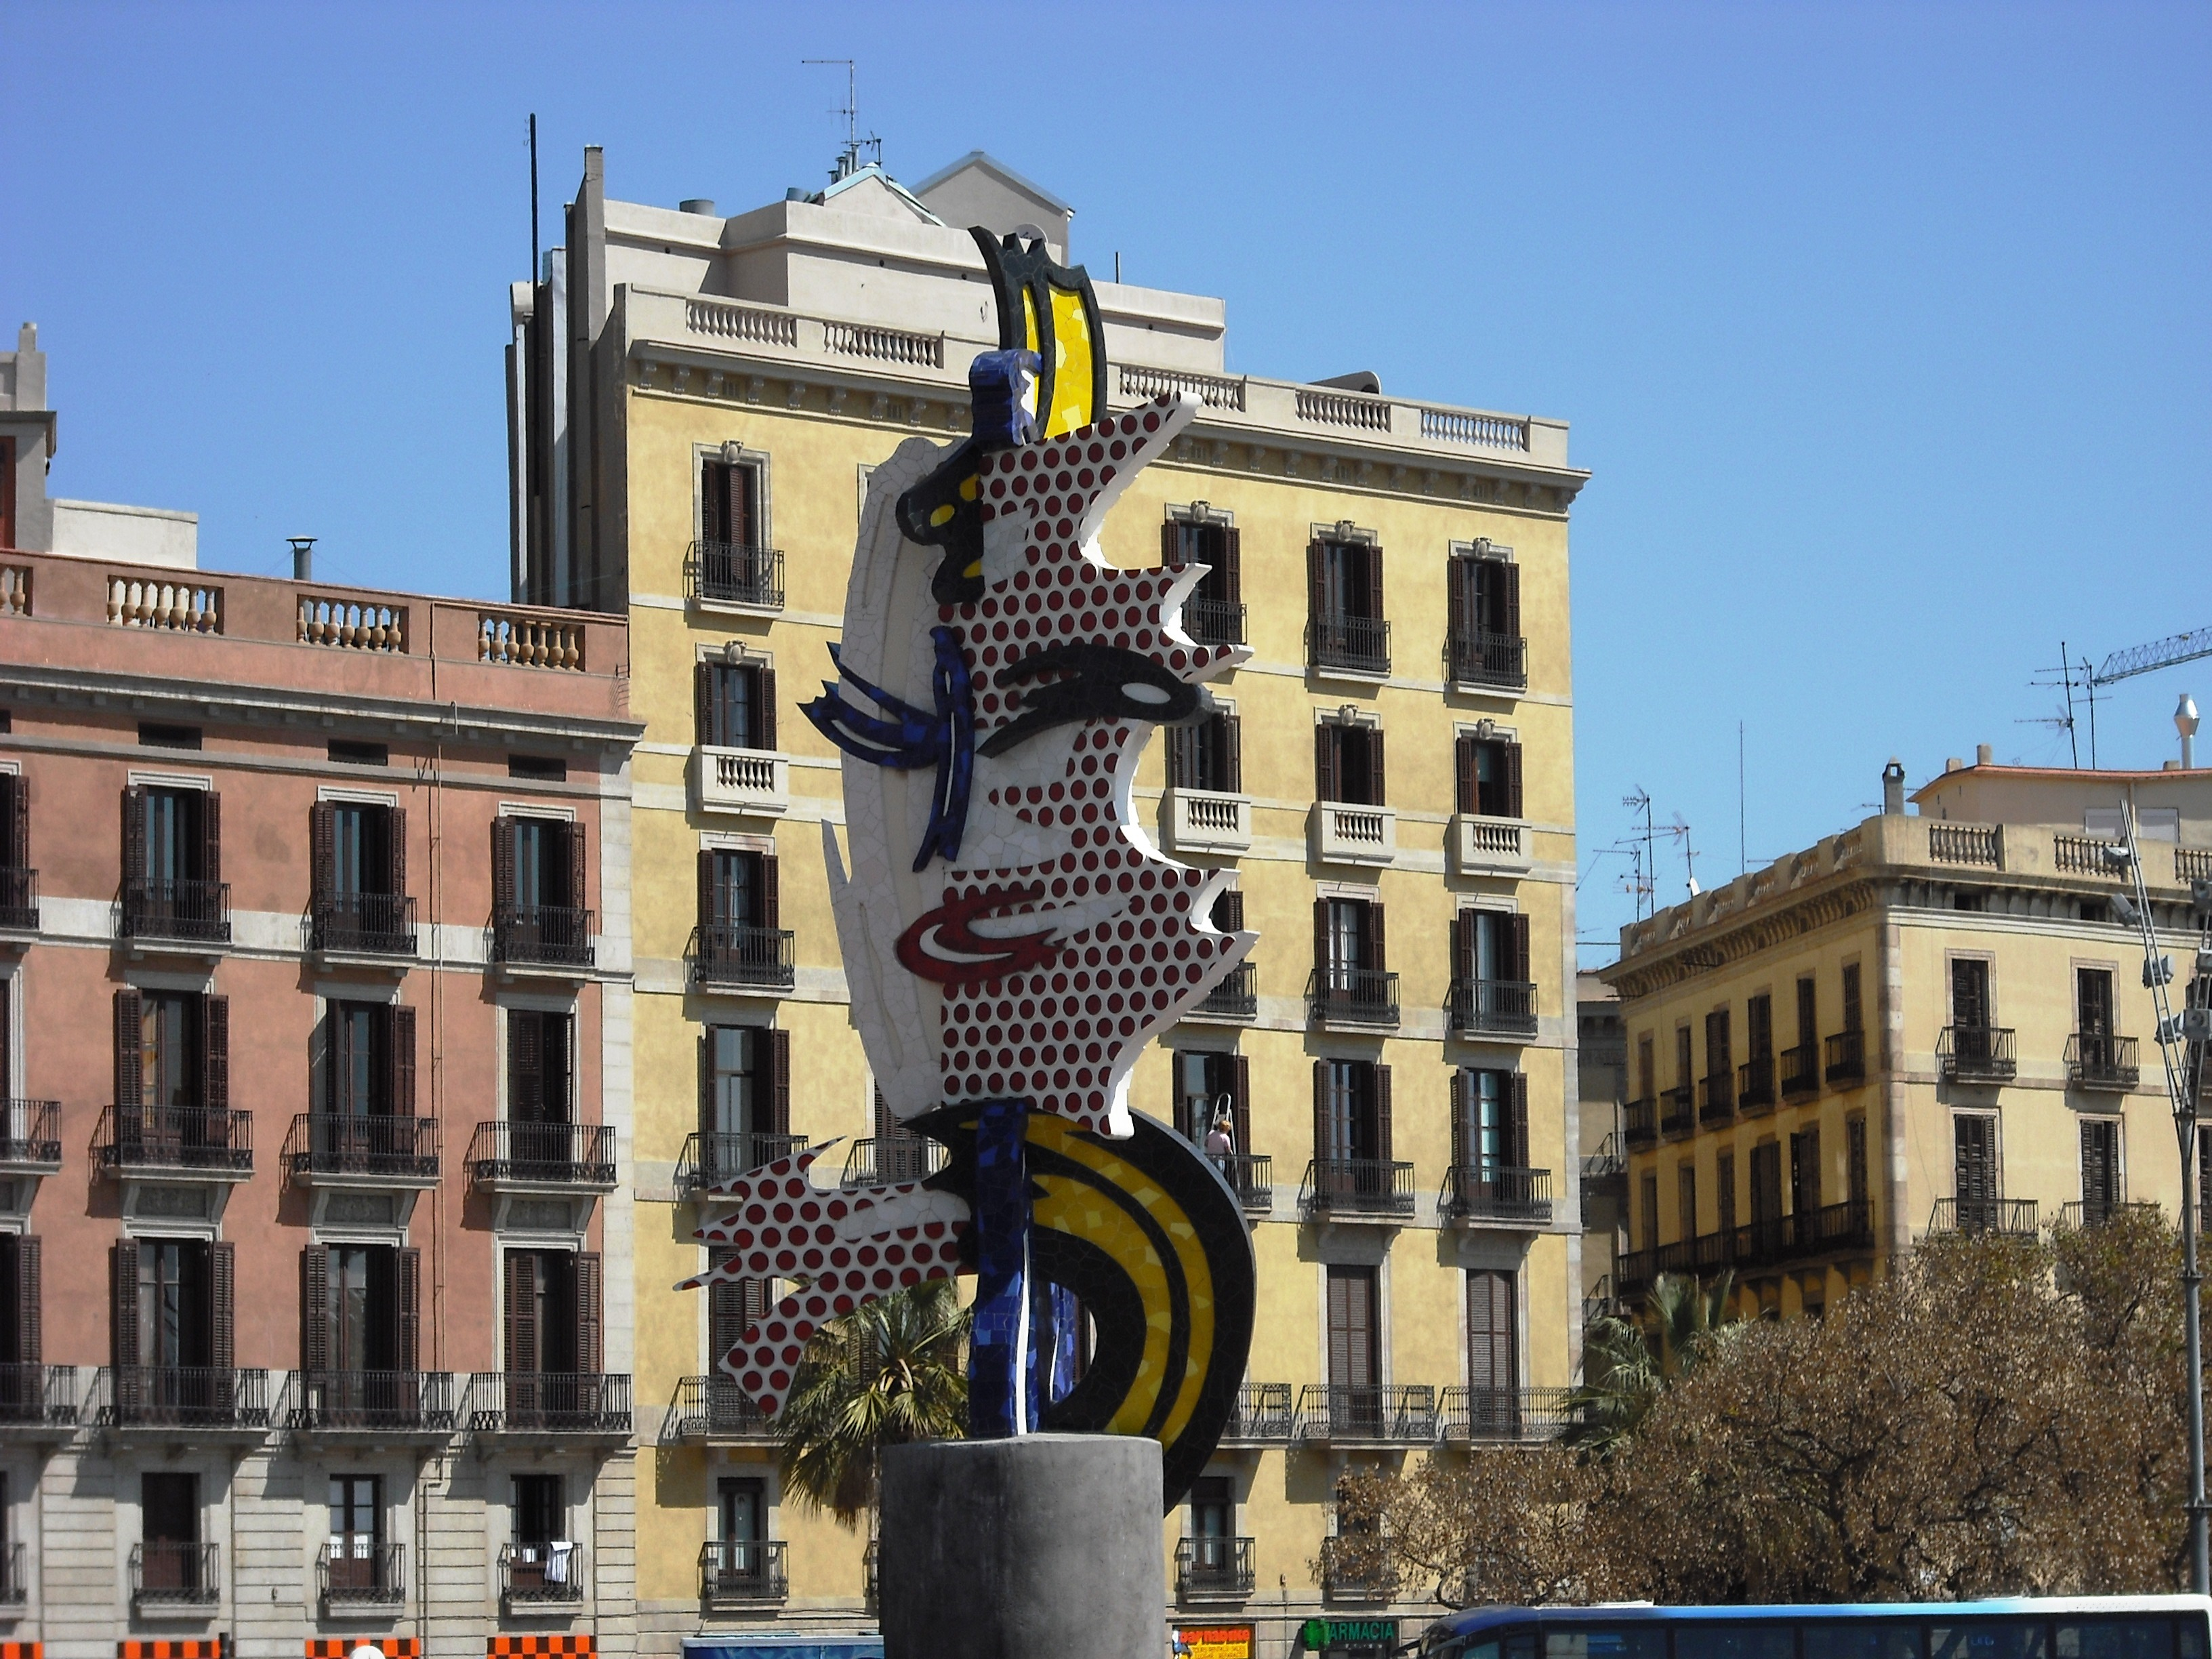 4 h walking tour – Picasso Museum Barcelona and Old town